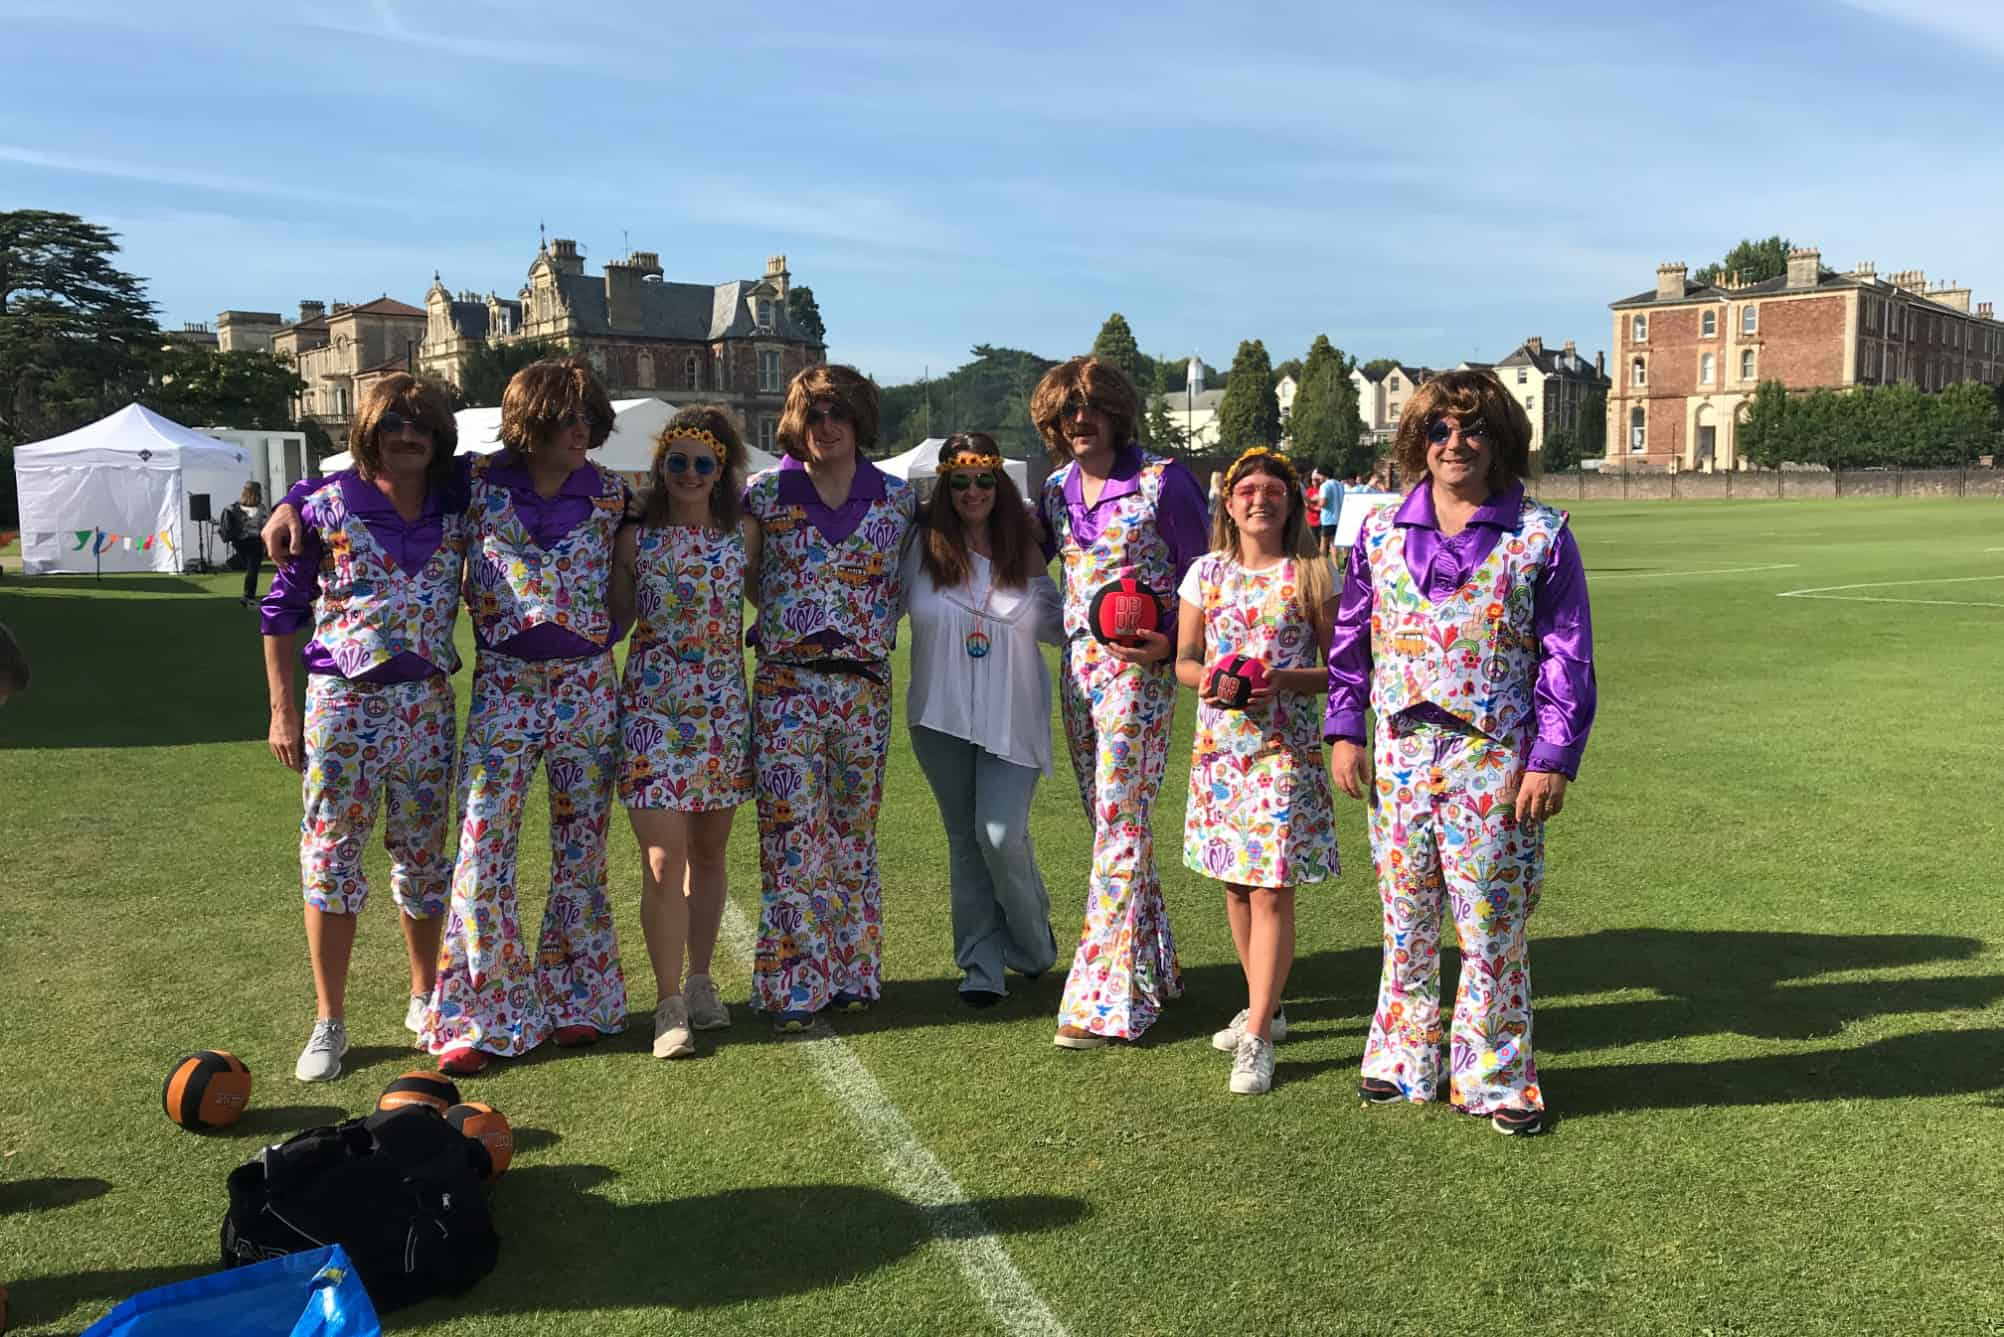 Dodgeball tournament participants dressed in 1970s fancy dress